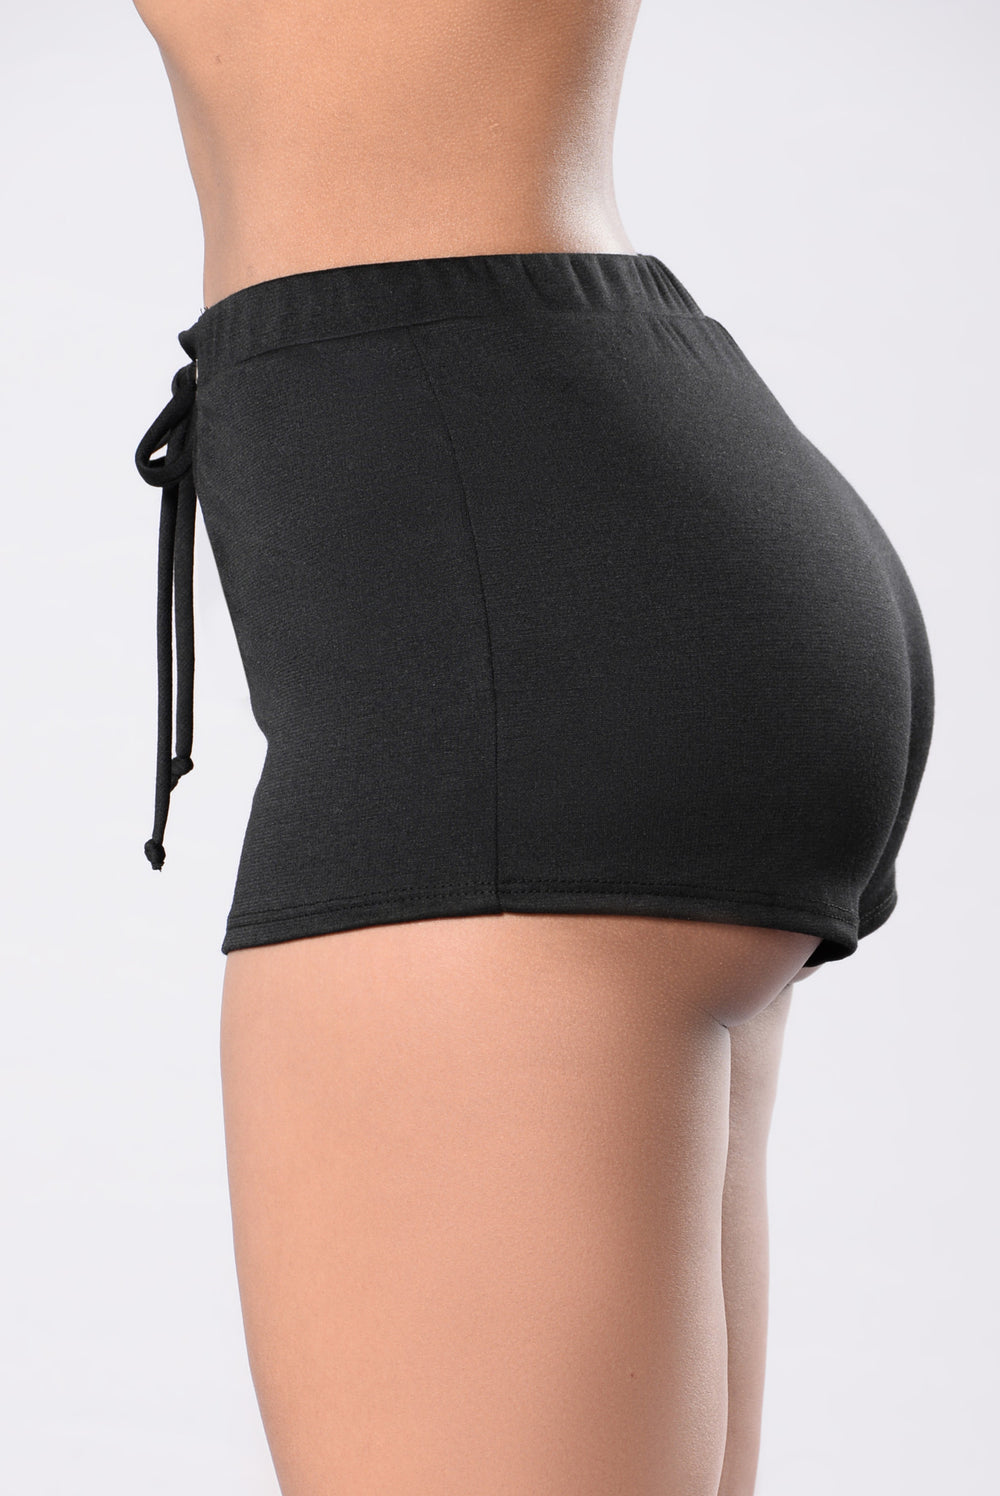 Forget It All Shorts - Black